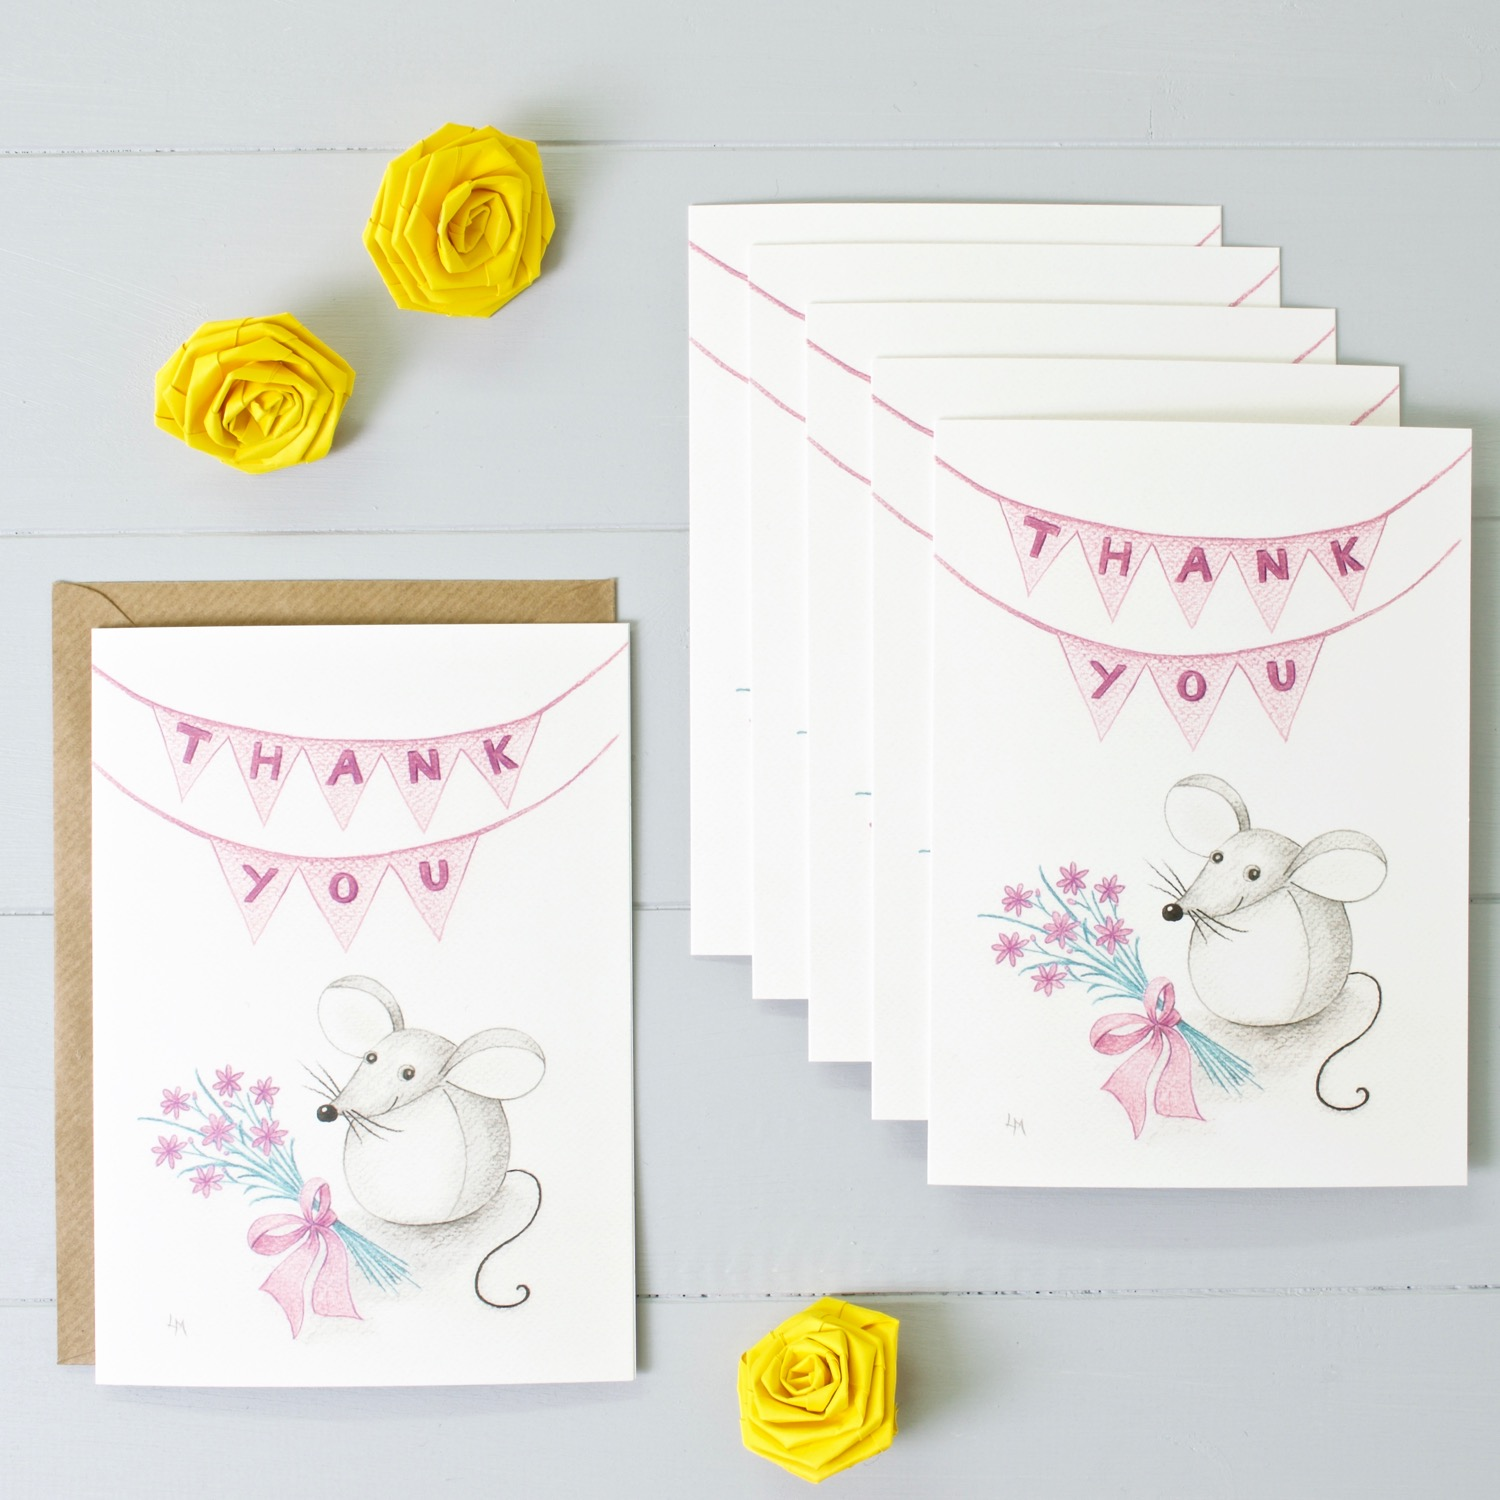 Bilberry Woods mouse character Thank You greeting card by Laura Mirjami | Yellow Rose Design